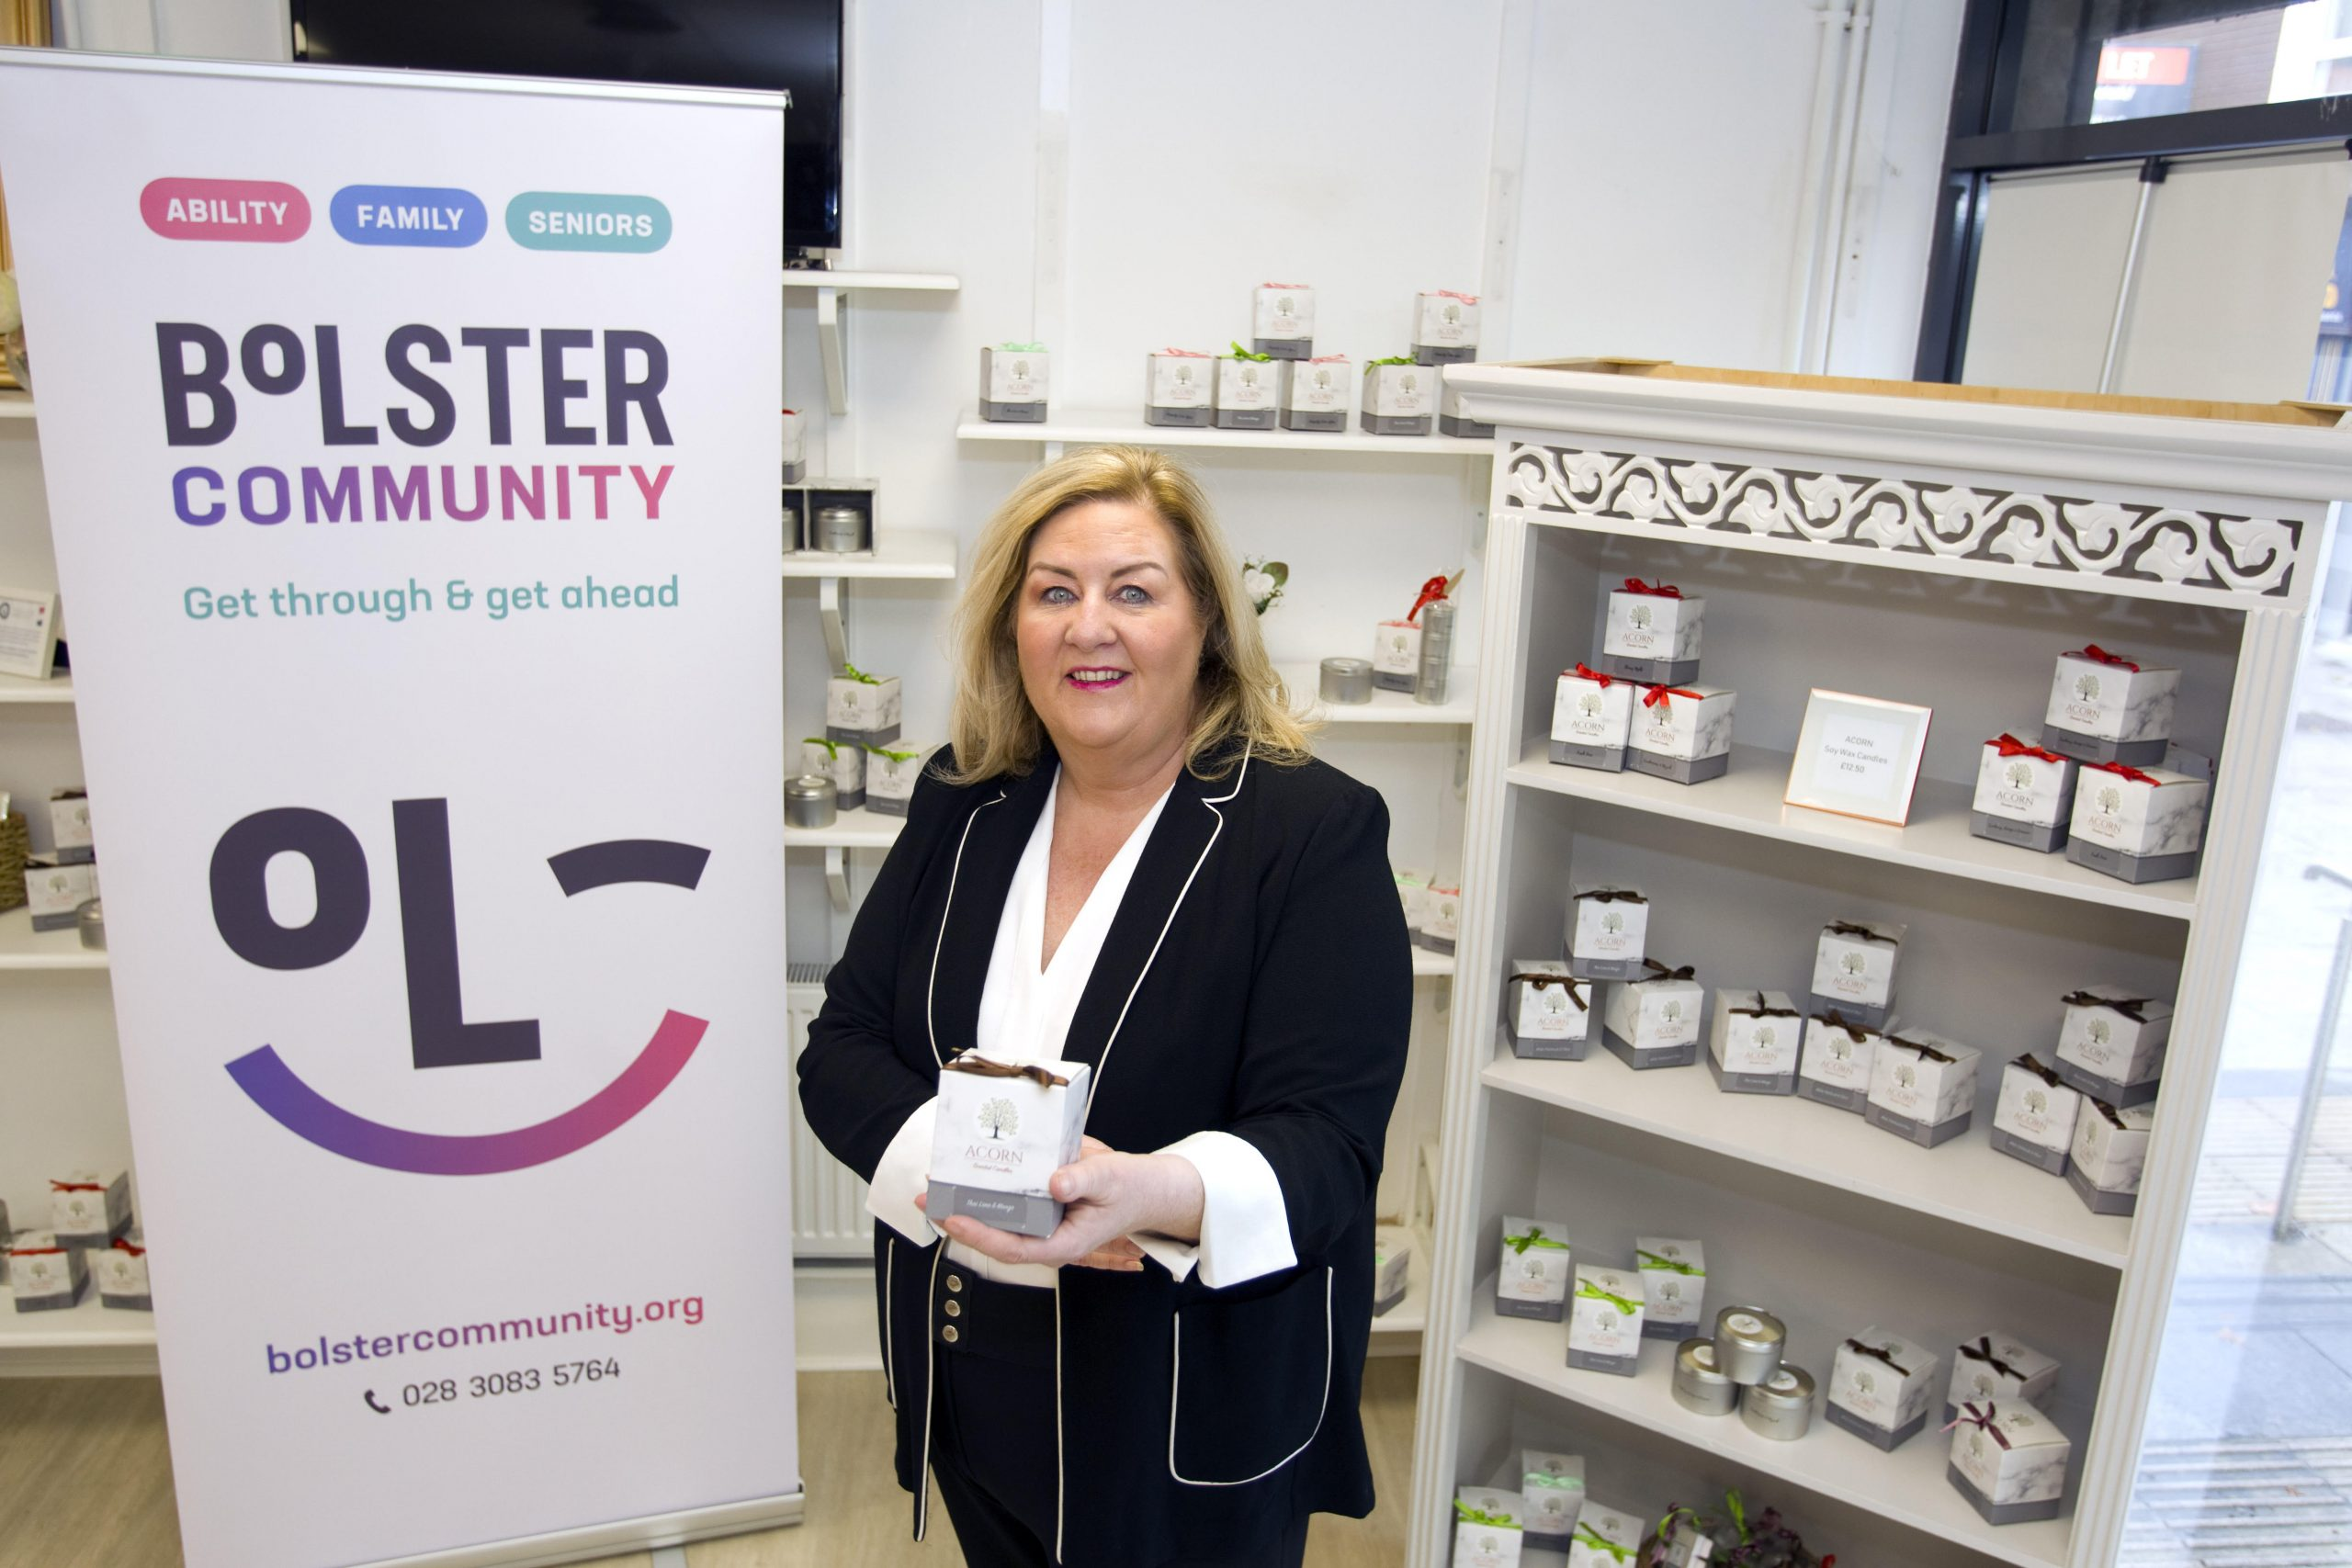 Bolster Community provides a safety net for Newry and Mourne through COVID-19